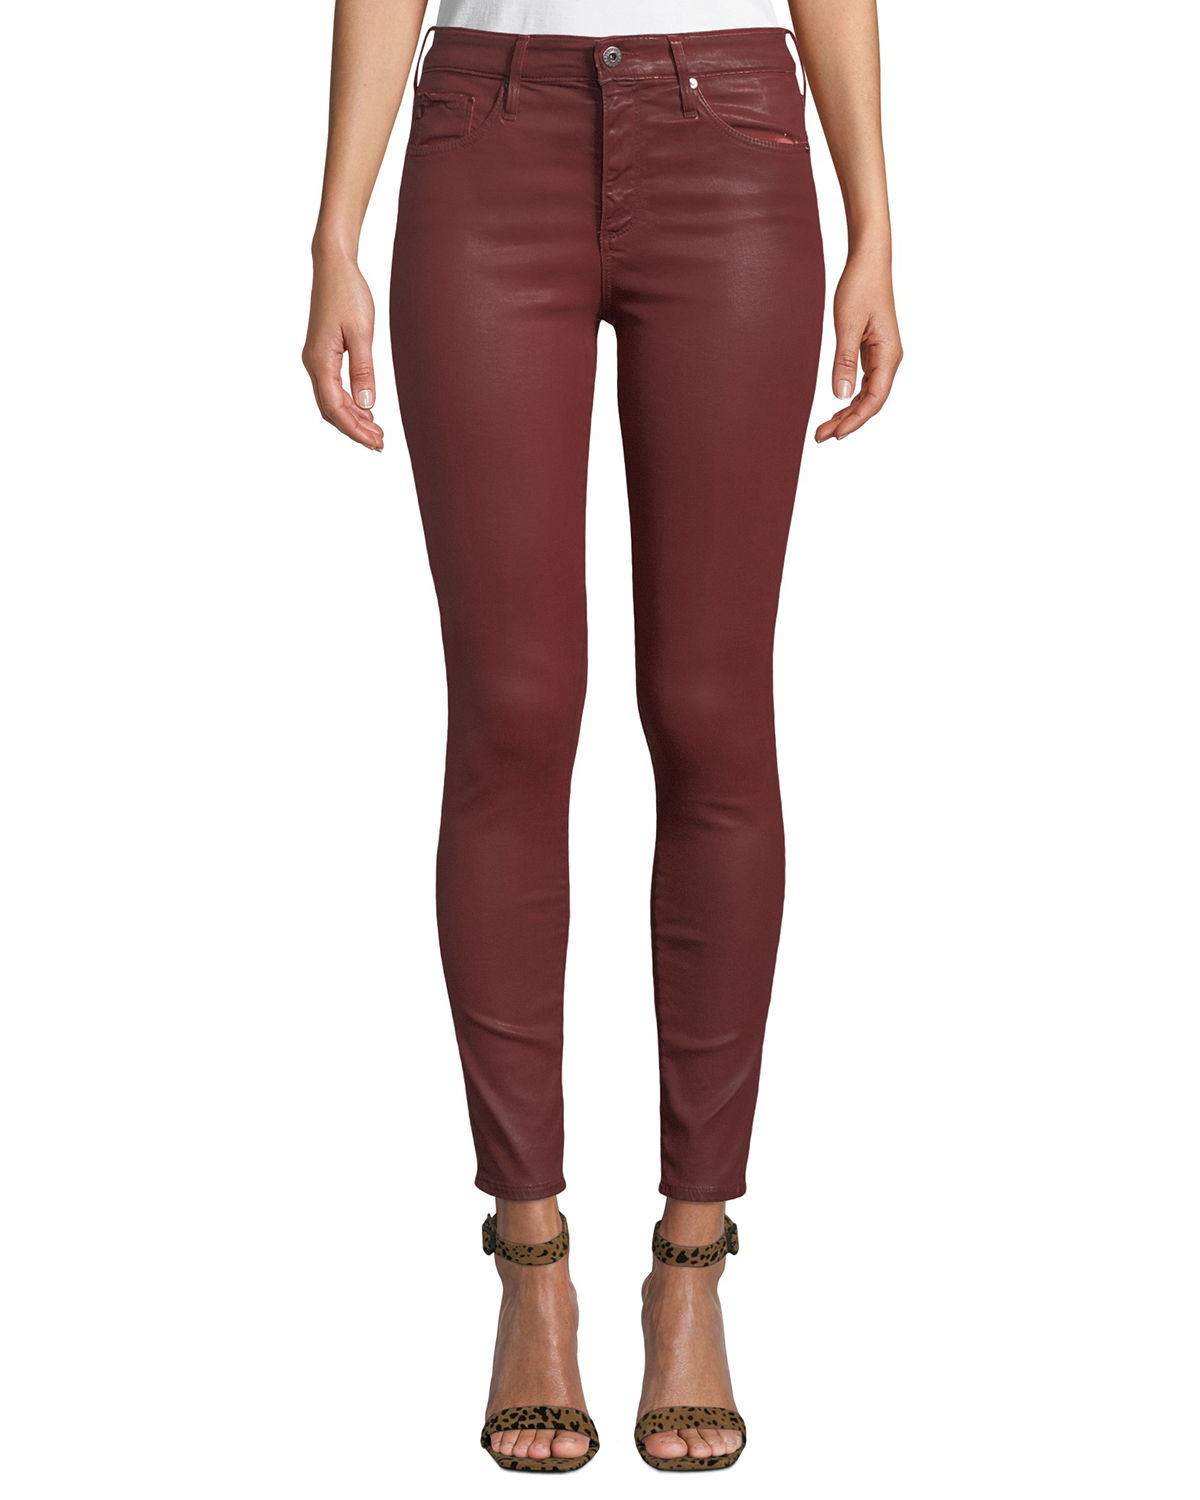 301e27ec2f25 AG Adriano Goldschmied Farrah Sateen High-Rise Ankle Skinny Jeans ...